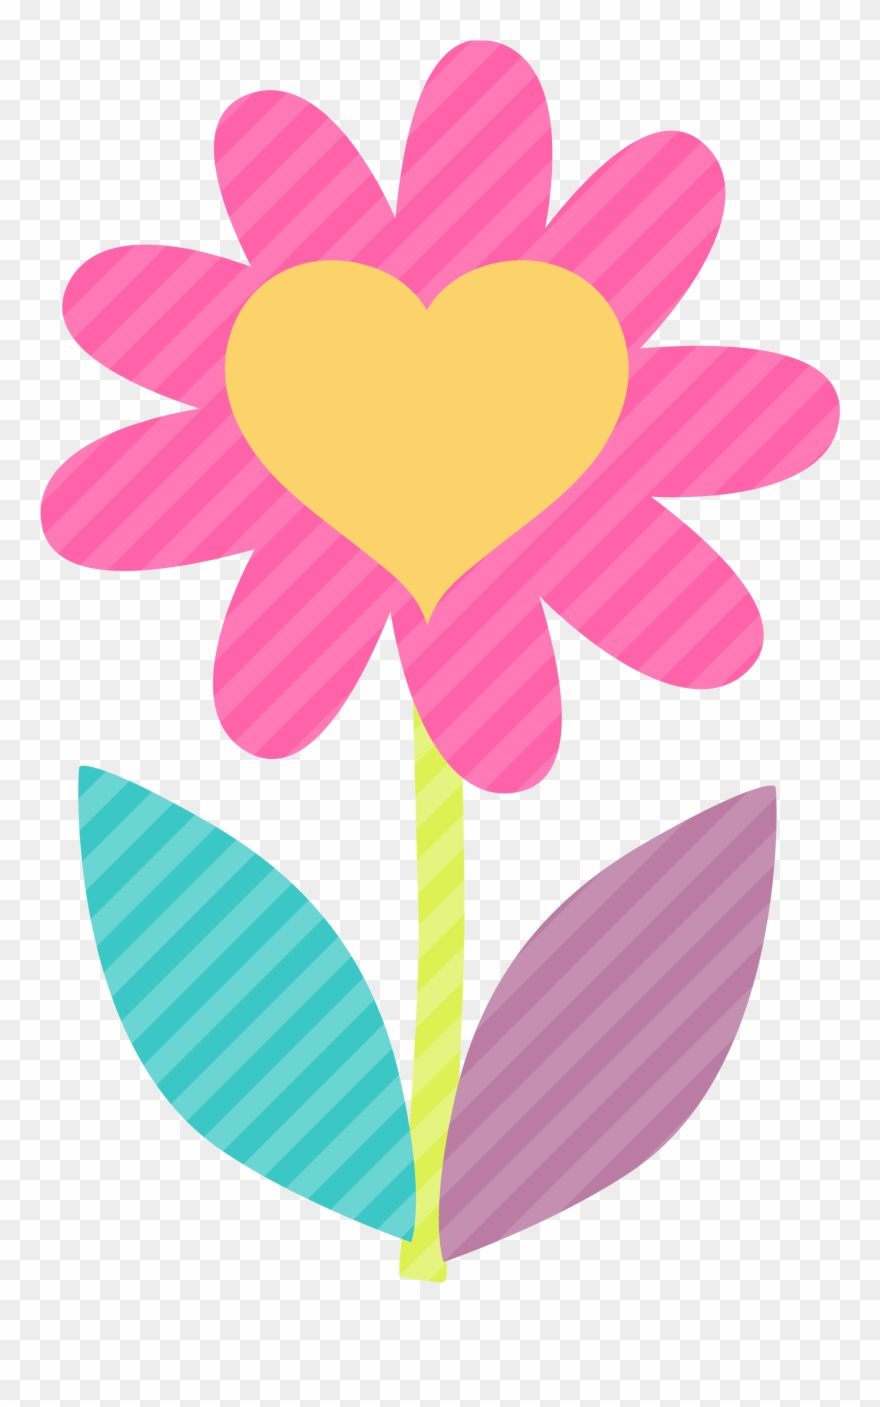 Clipart flower spa.